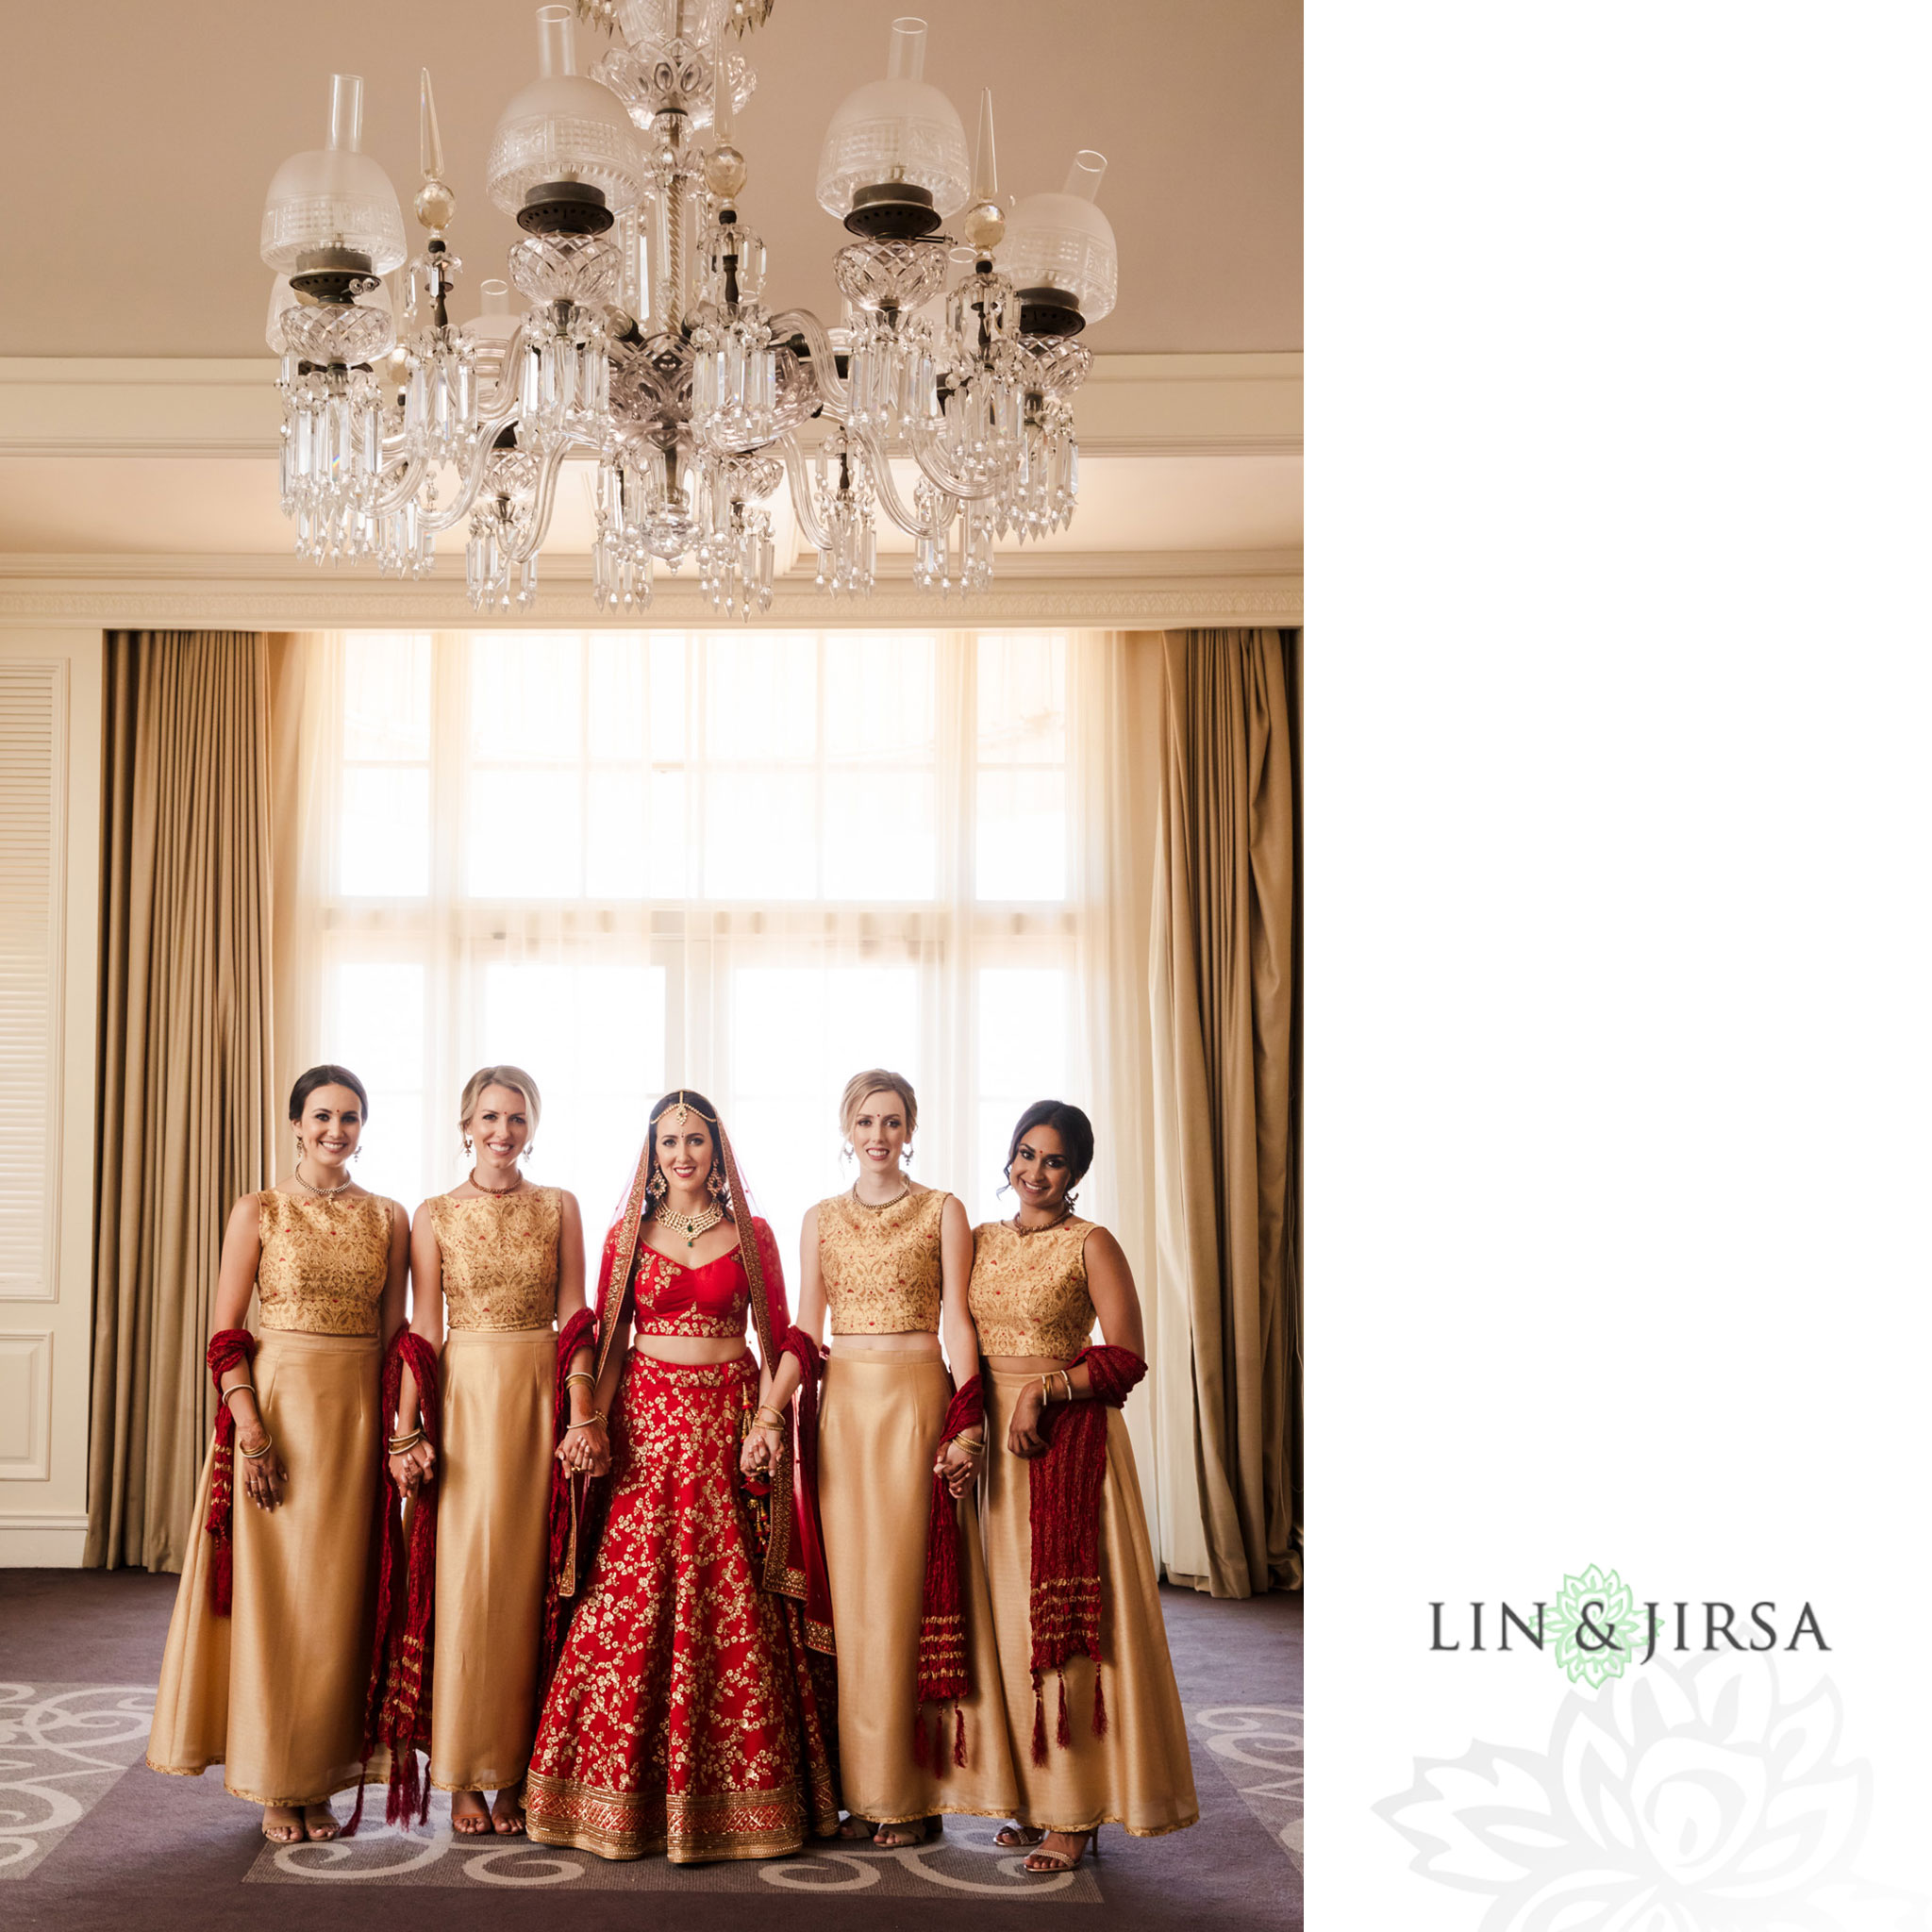 004 ritz carlton laguna niguel indian bridesmaids wedding photography